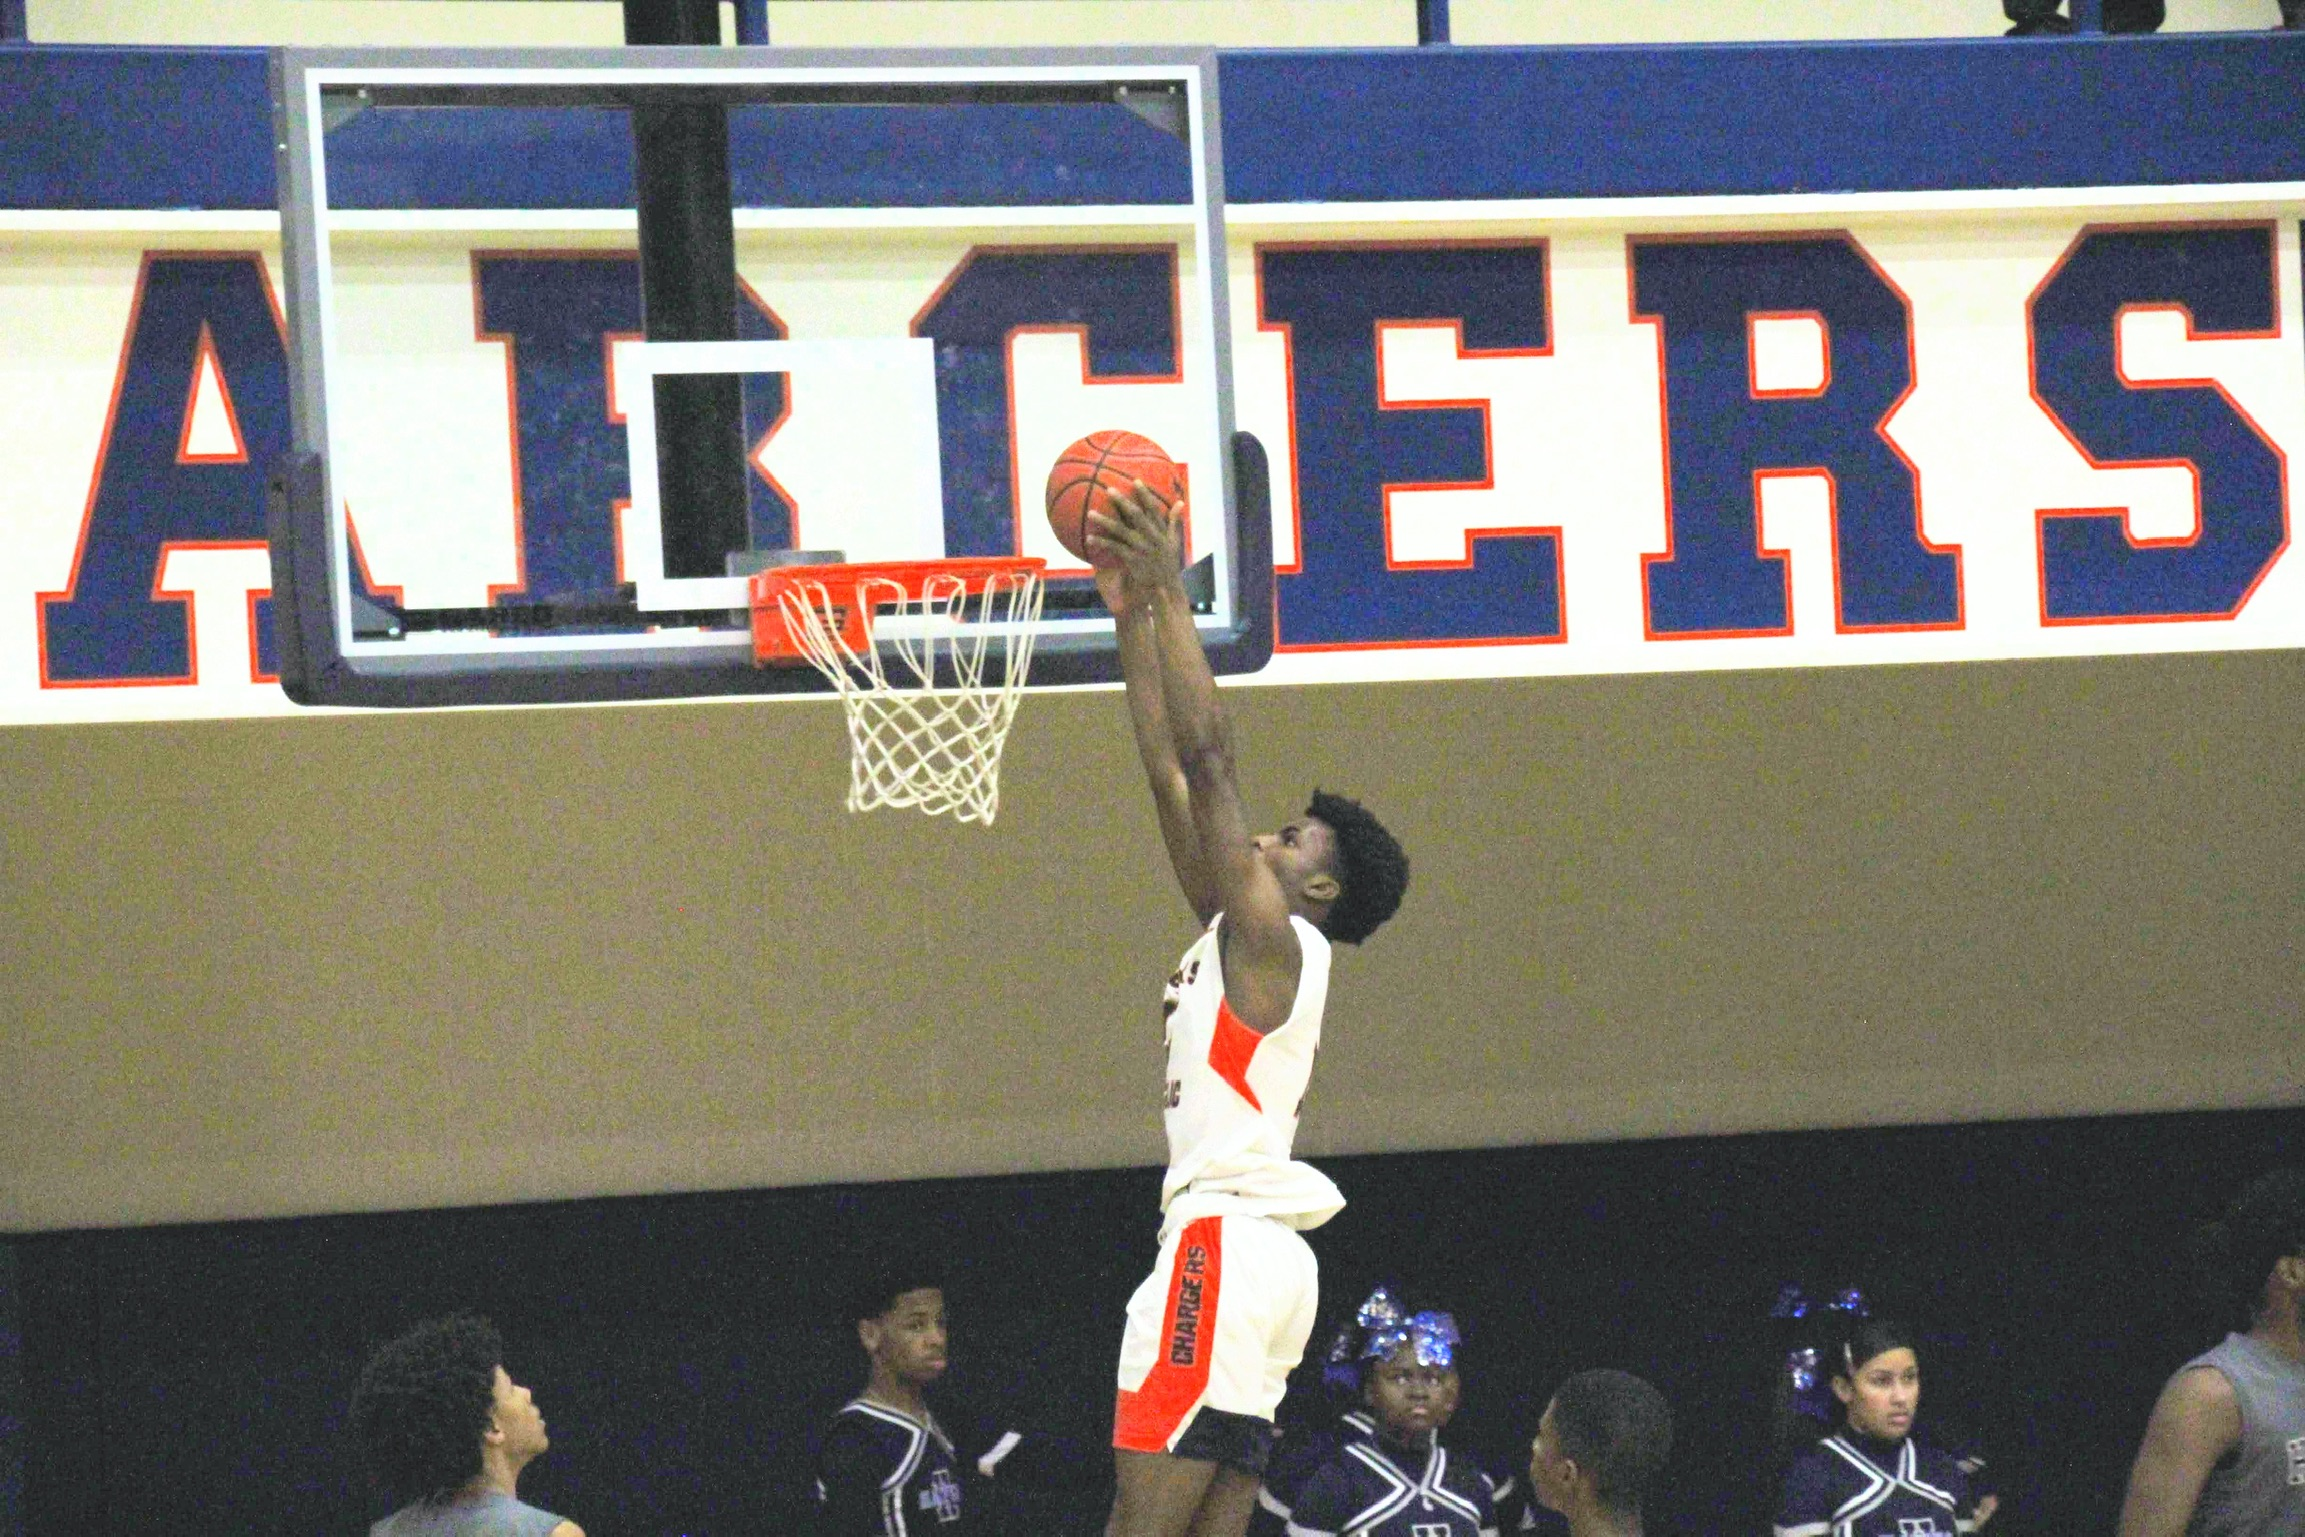 Chargers open up district play with a win over Hamady